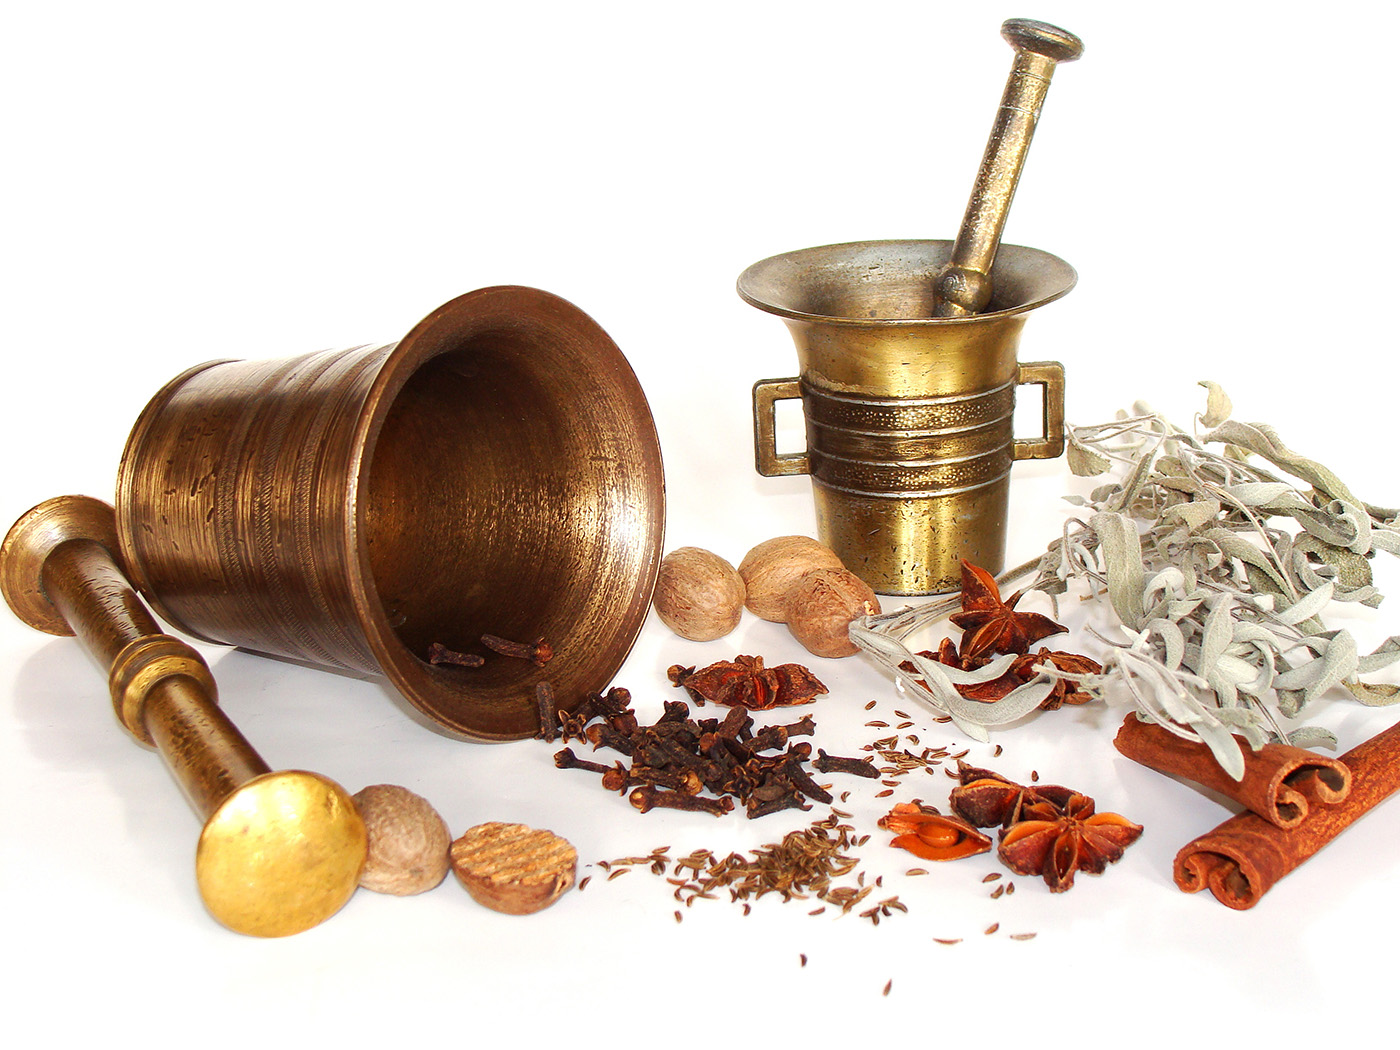 Star anise and other spices and grinding tools 50116